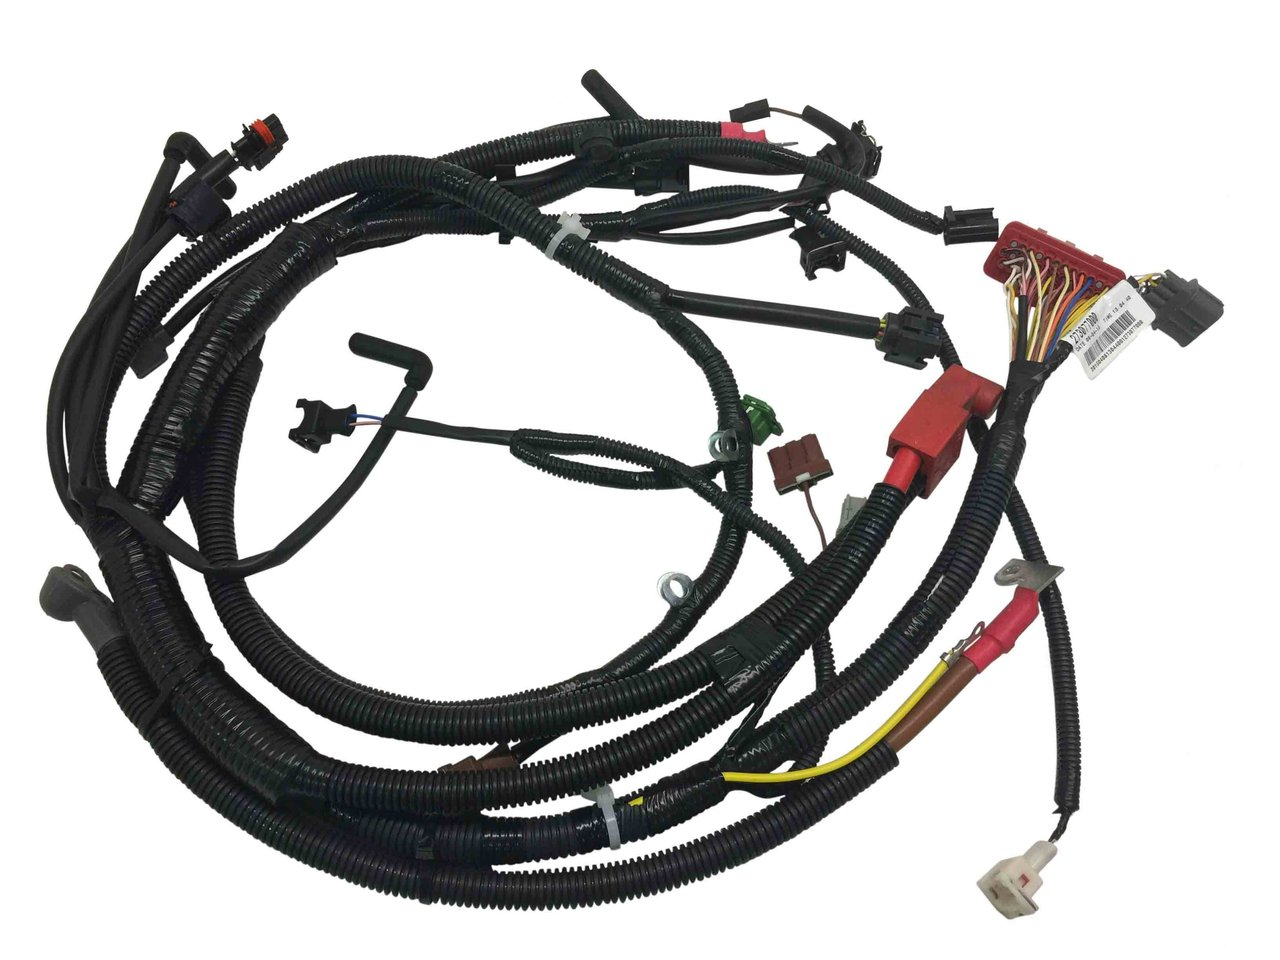 YSB108710__1 main engine wiring harness for discovery 2 diesel 5 cyl td5 1999 2001 td5 engine wiring harness at aneh.co